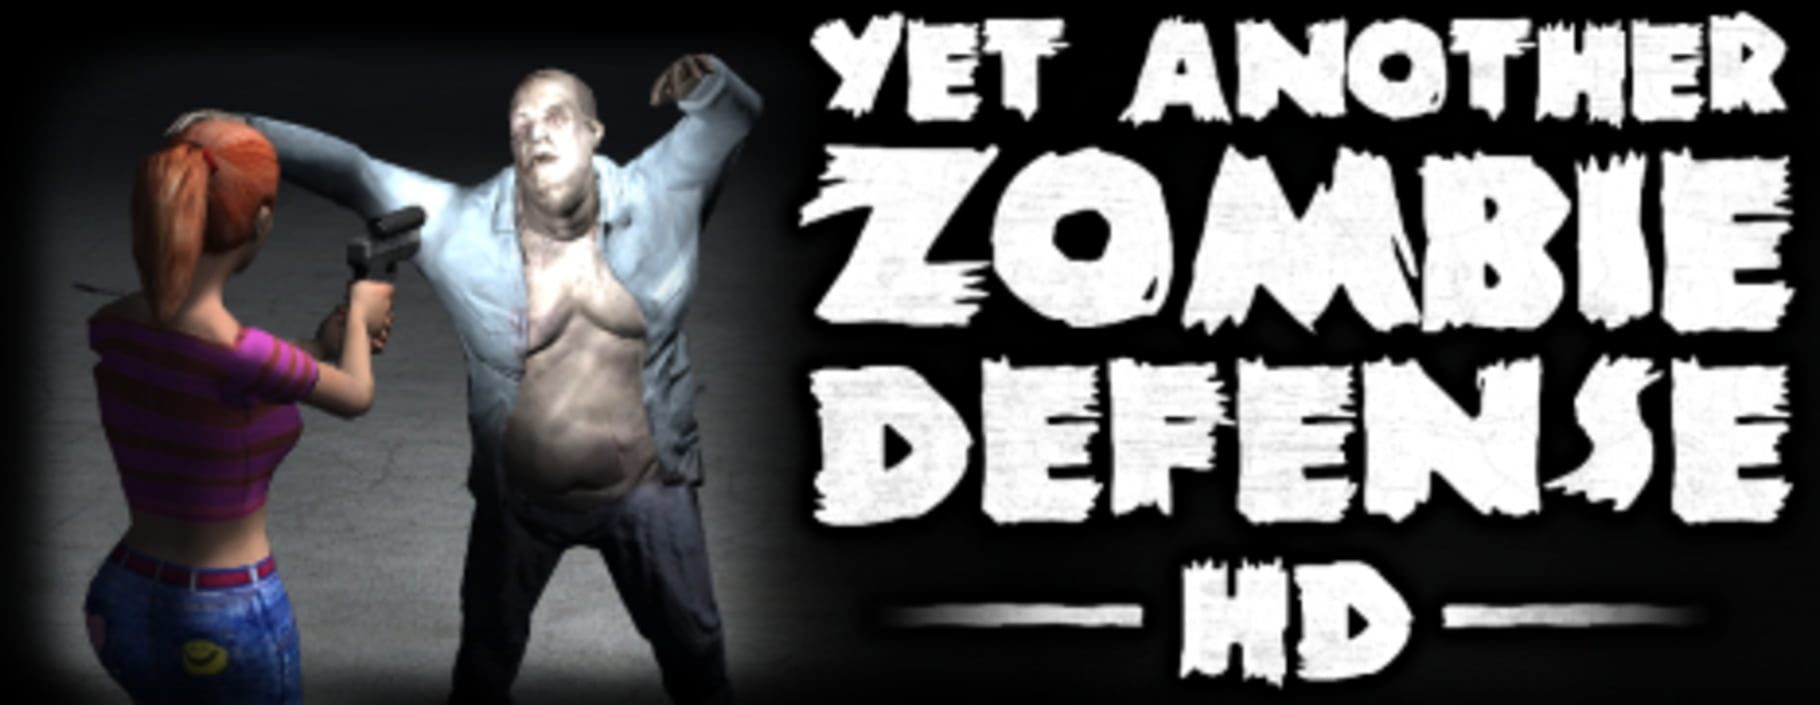 buy Yet Another Zombie Defense HD cd key for all platform